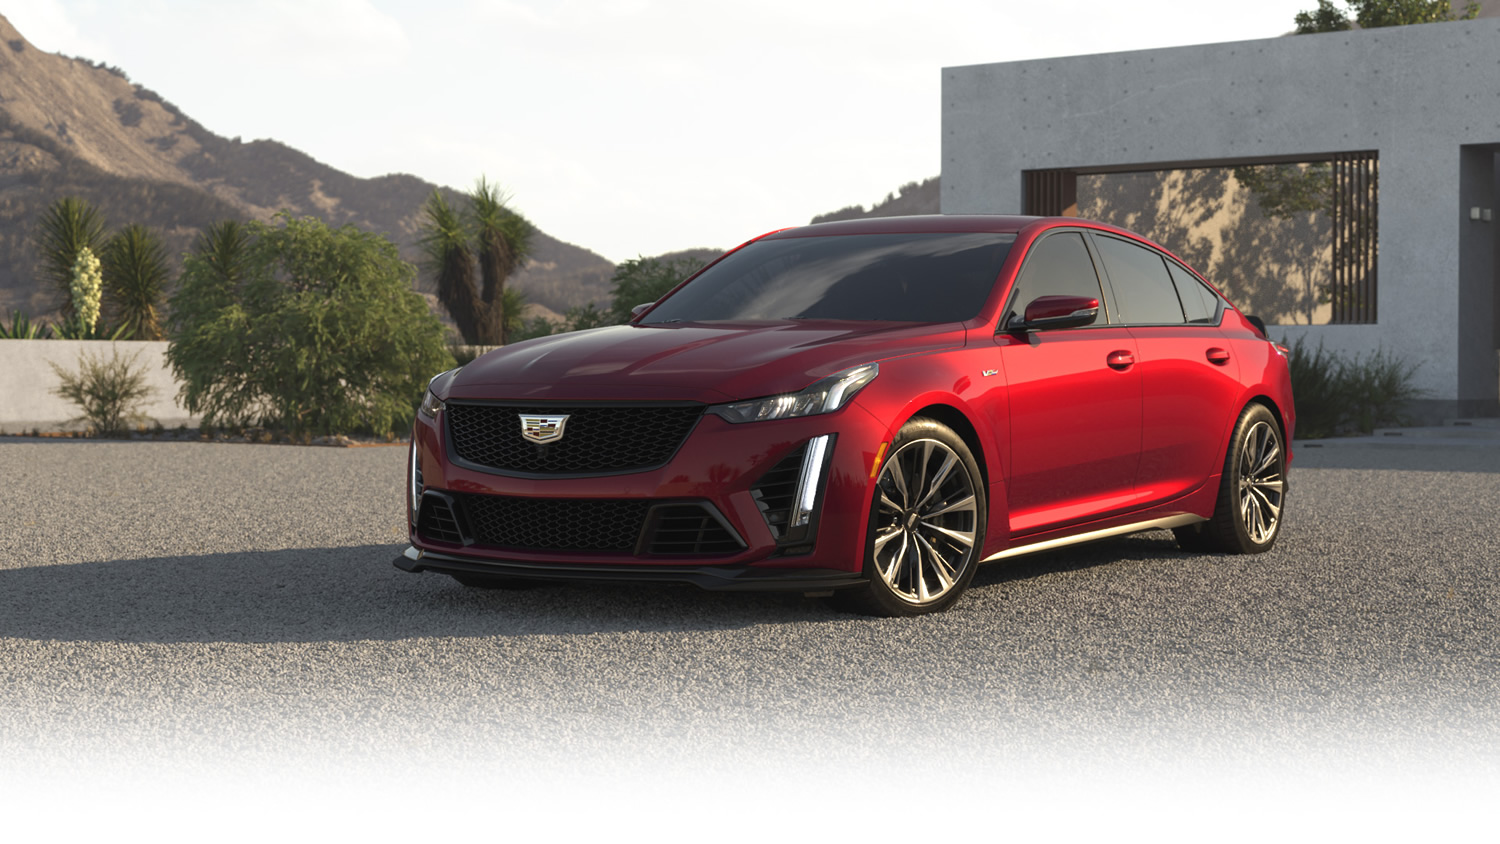 2022 Cadillac CT5-V Blackwing in Infrared Tintcoat